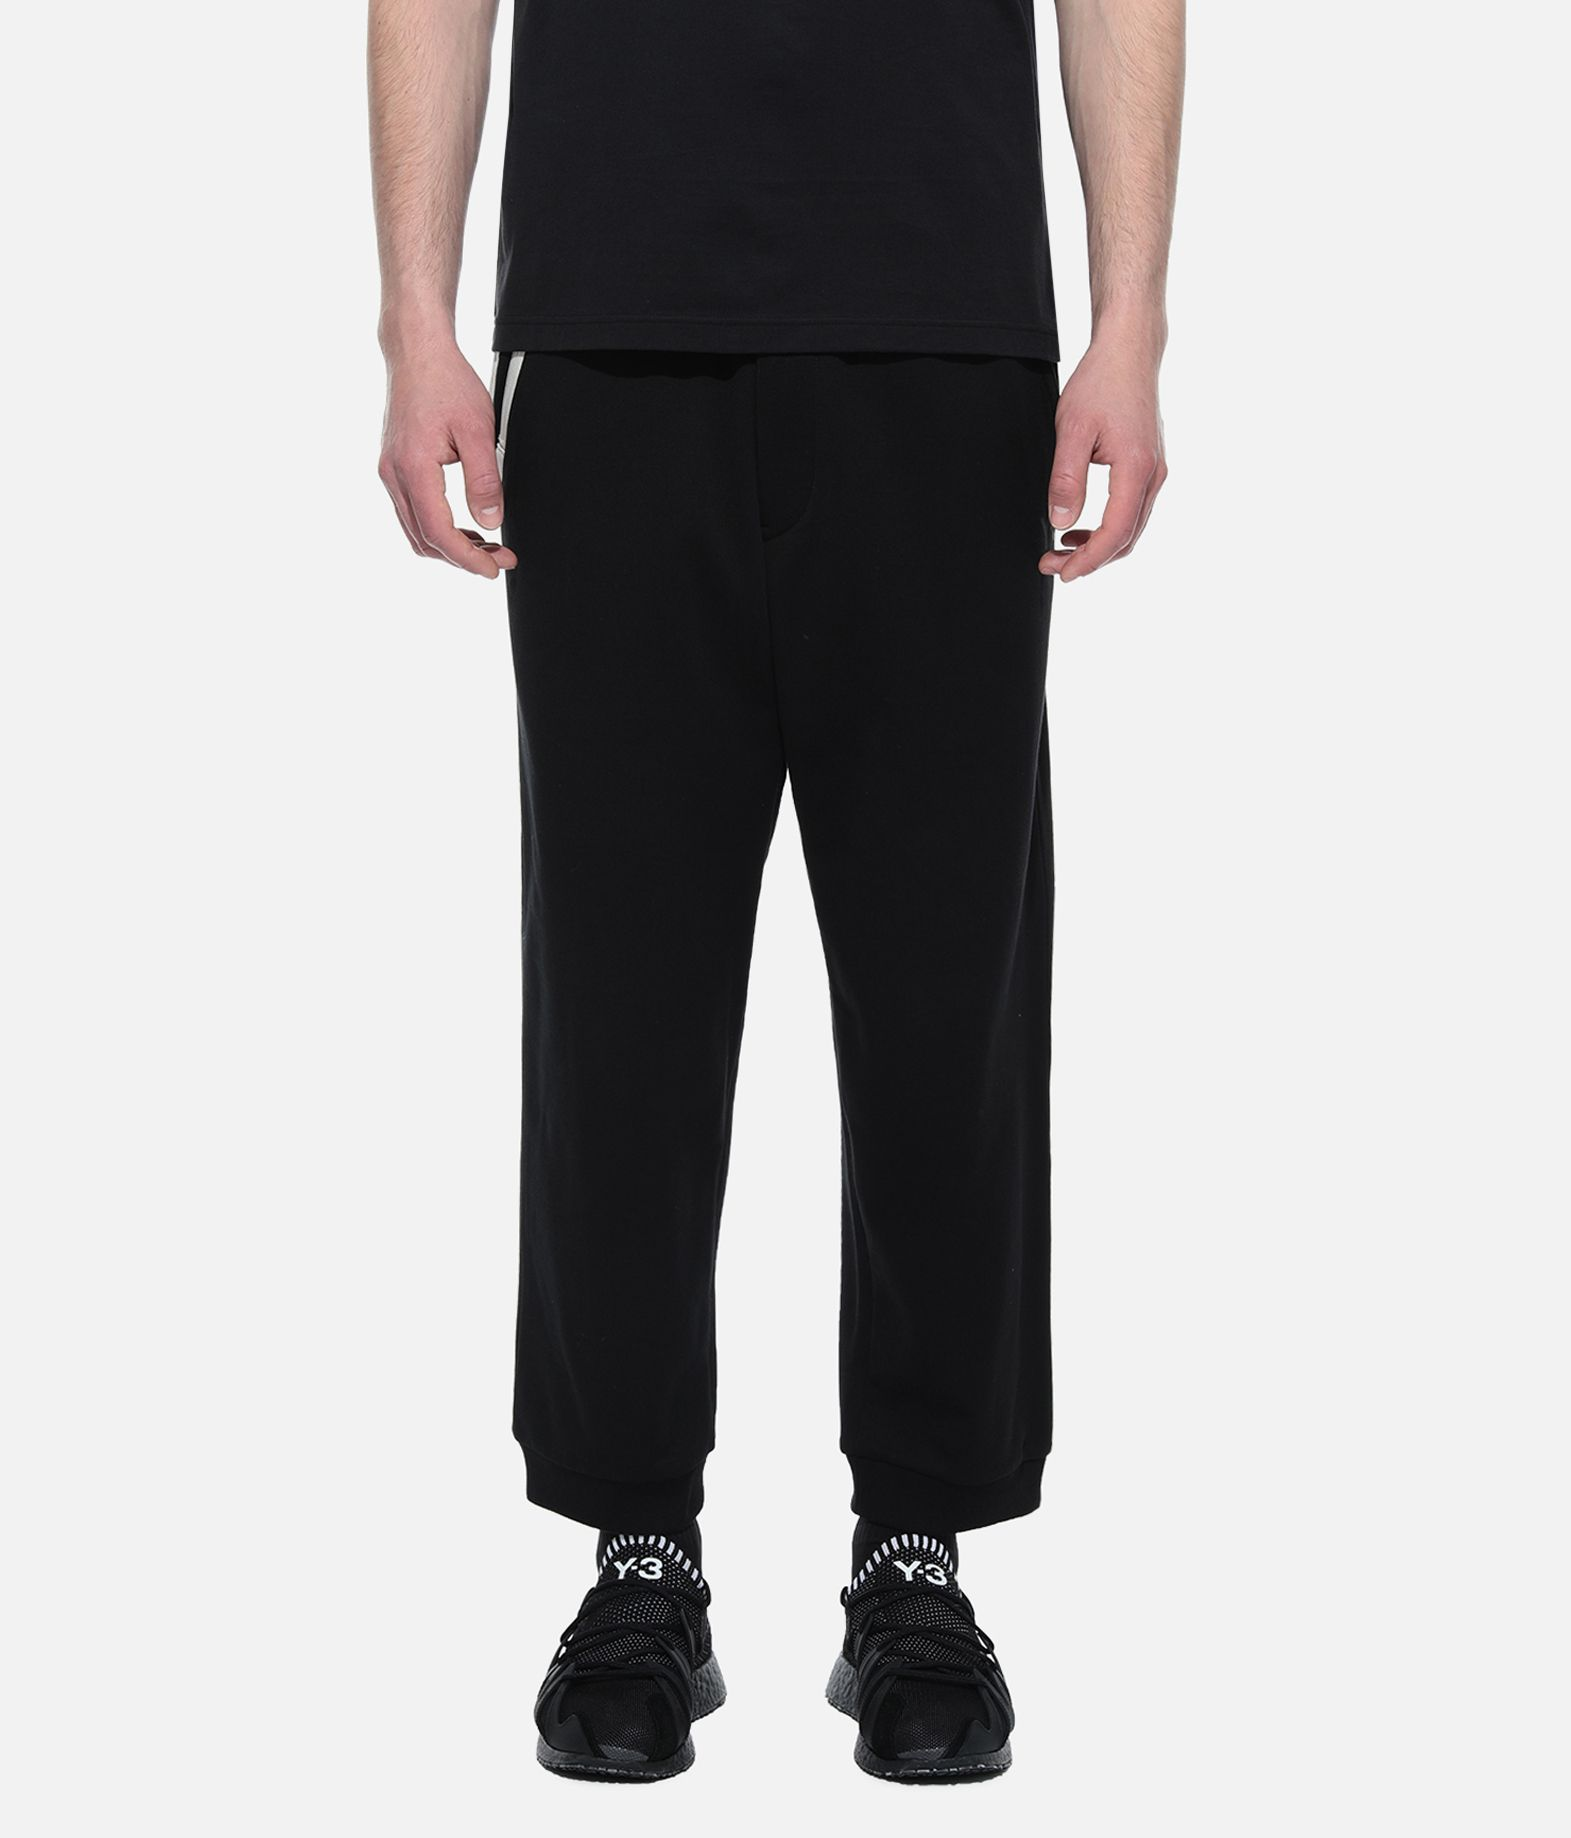 Y-3 Y-3 3-Stripes Cuff Pants Casual pants Man r